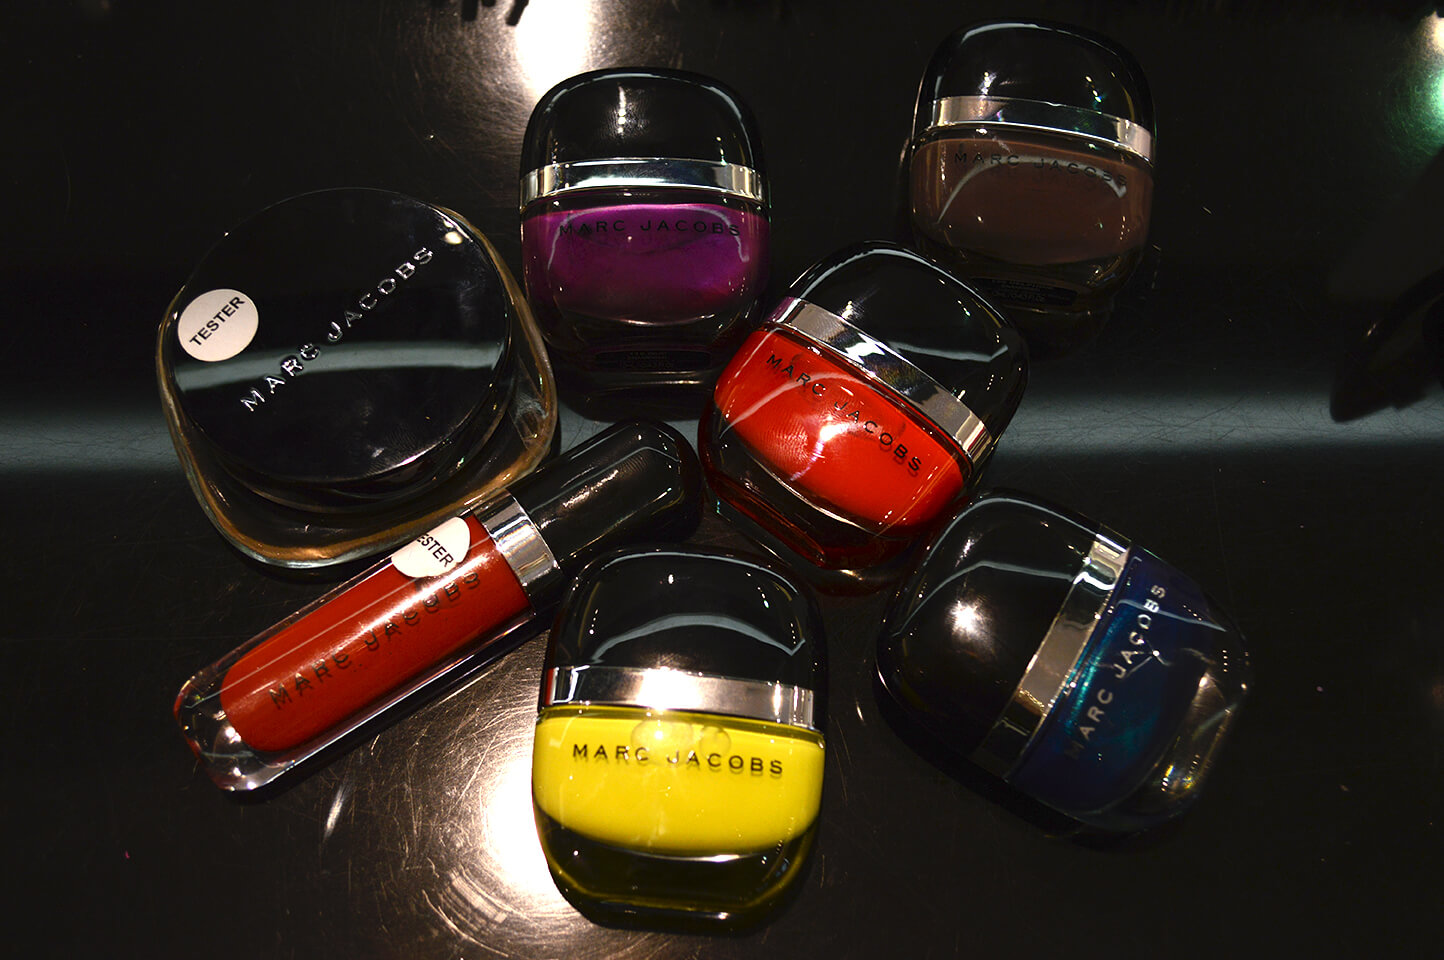 Maquiagens Marc Jacobs Beauty na Sephora do Brasil